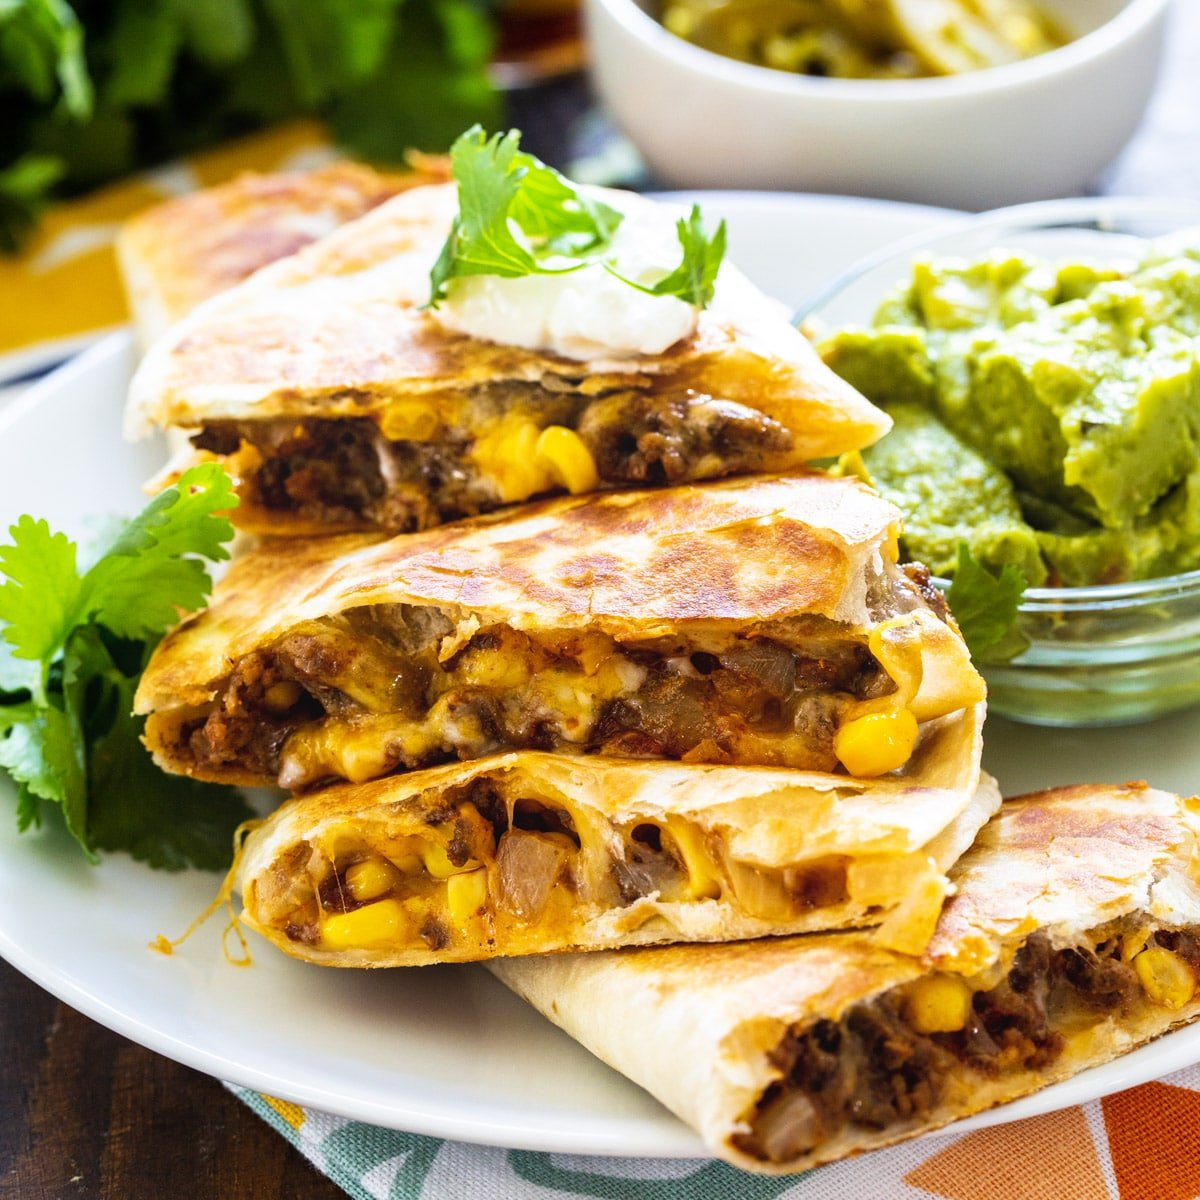 Ground Beef Quesadillas cut into wedges and piled on a plate.